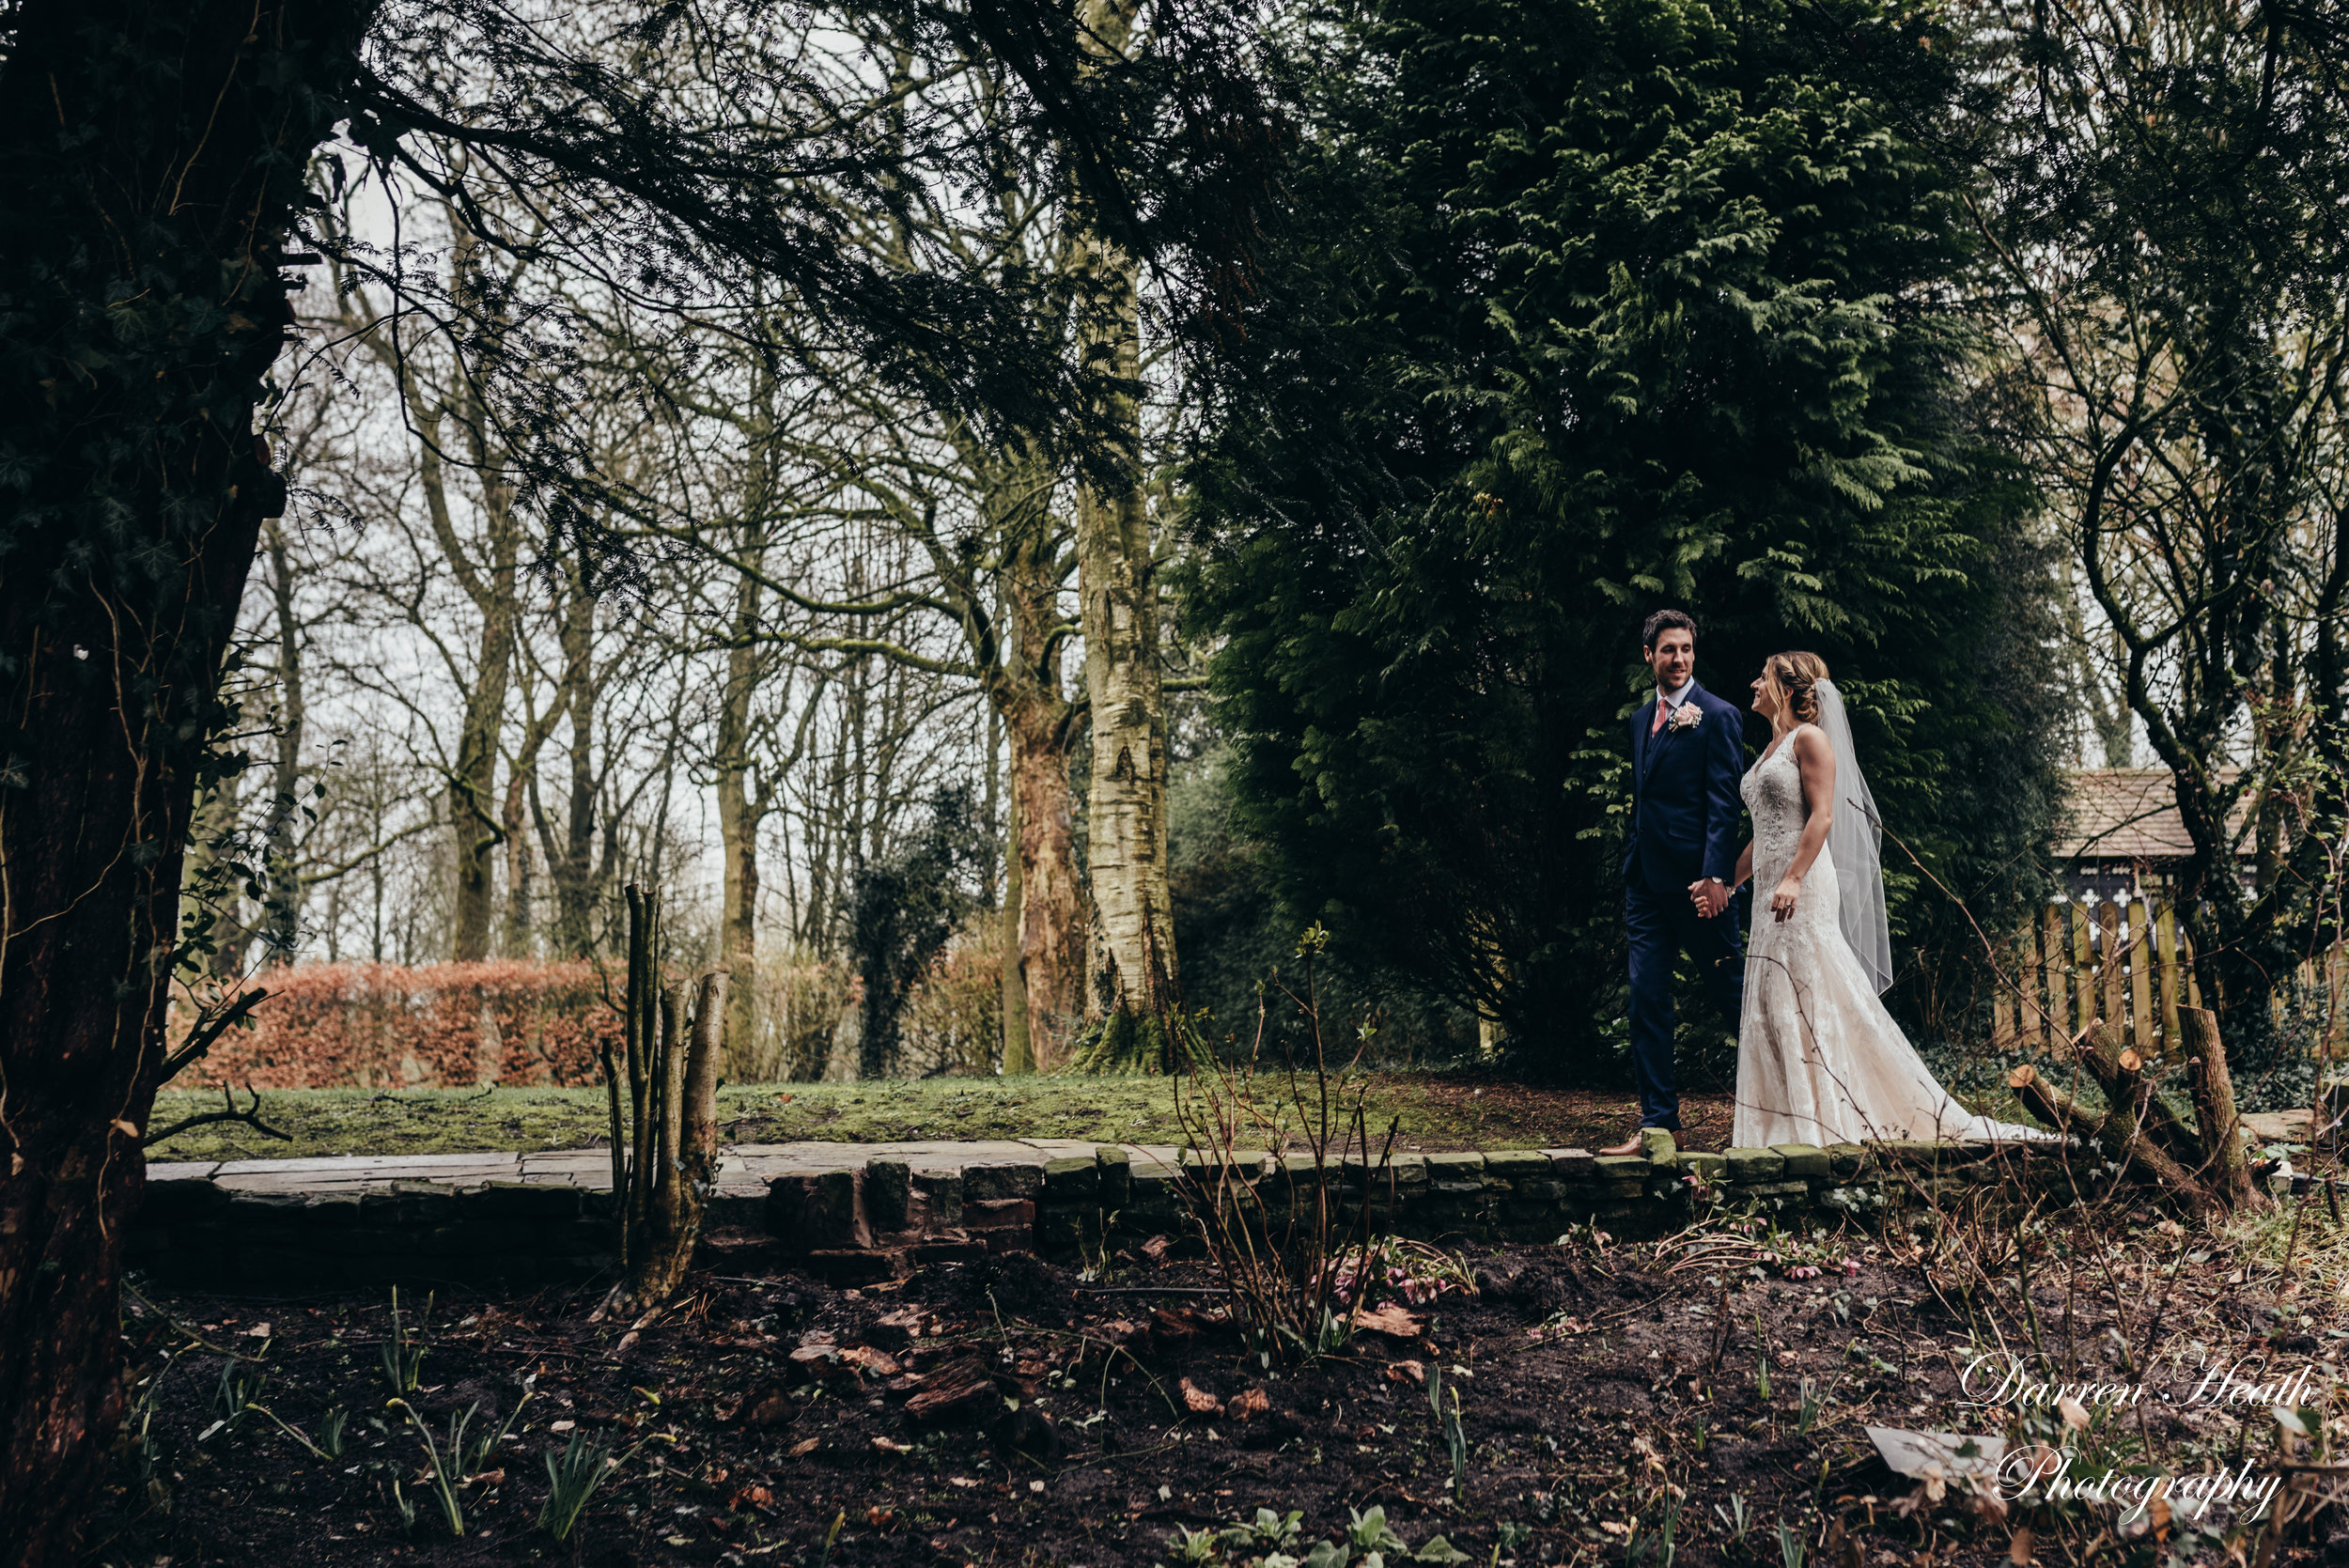 Bride and Groom take time to explore the grounds at Samlesbury Hall